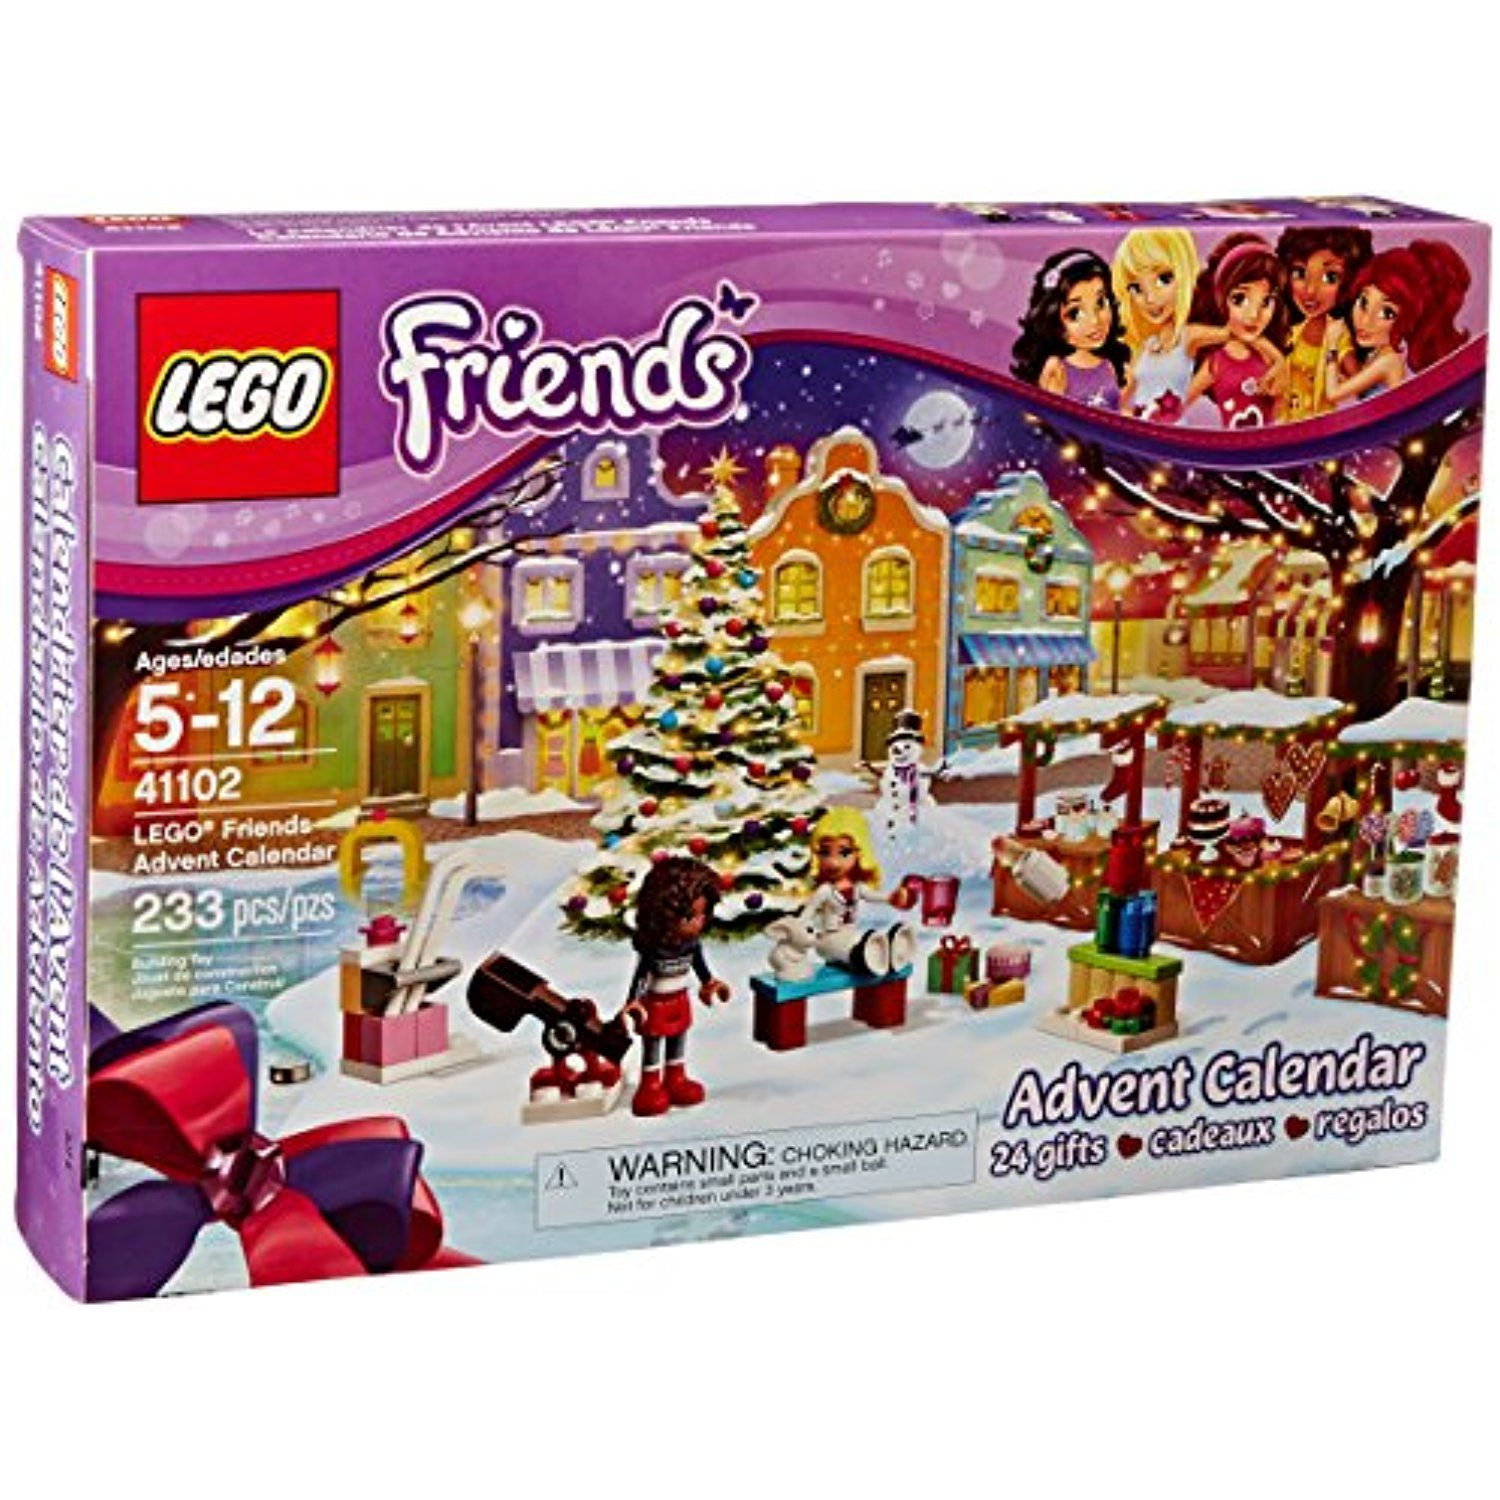 Lego Friends 41102 Advent Calendar Building Kit Discontinued By Manufacturer Want To Know More With Images Lego Friends Lego City Advent Calendar Christmas Gifts Toys